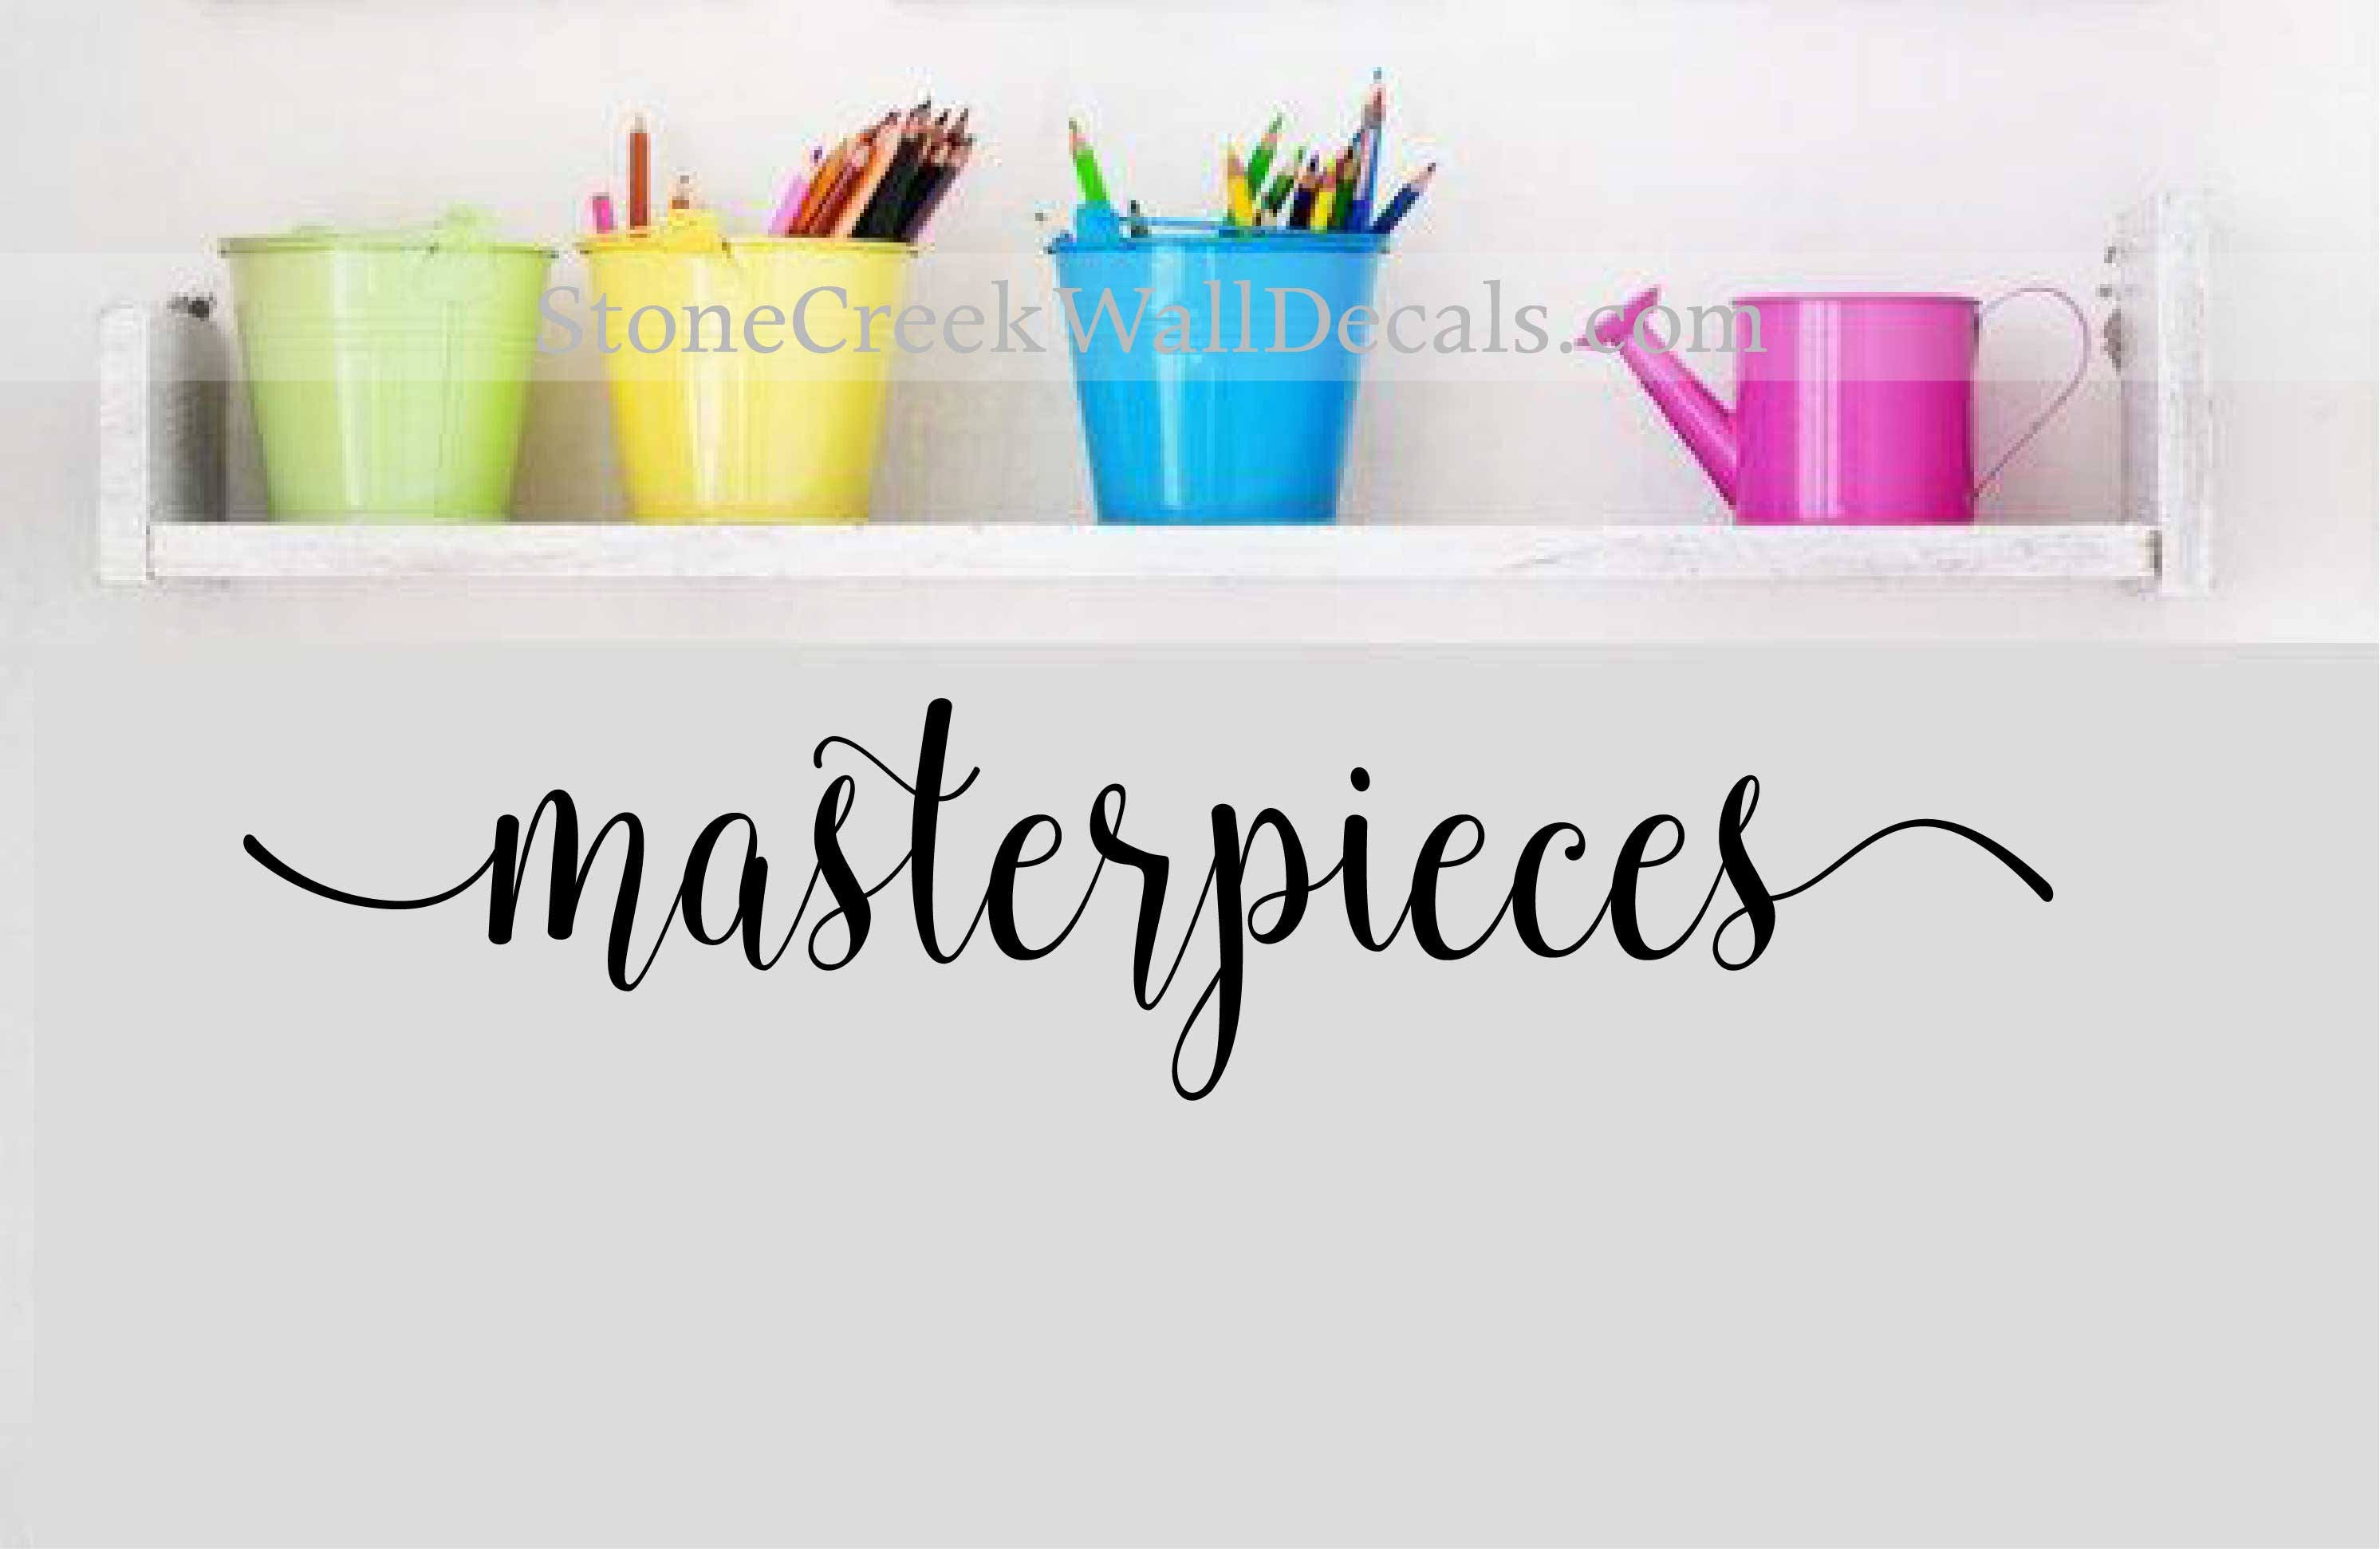 Masterpieces Wall Decal Childrens Wall Decals Playroom Decor Art Display Decal Wall Art Decal Playroom Wall Decals Children wall art  sc 1 st  stone creek wall decals & Masterpieces Wall Decal Childrens Wall Decals Playroom Decor Art ...